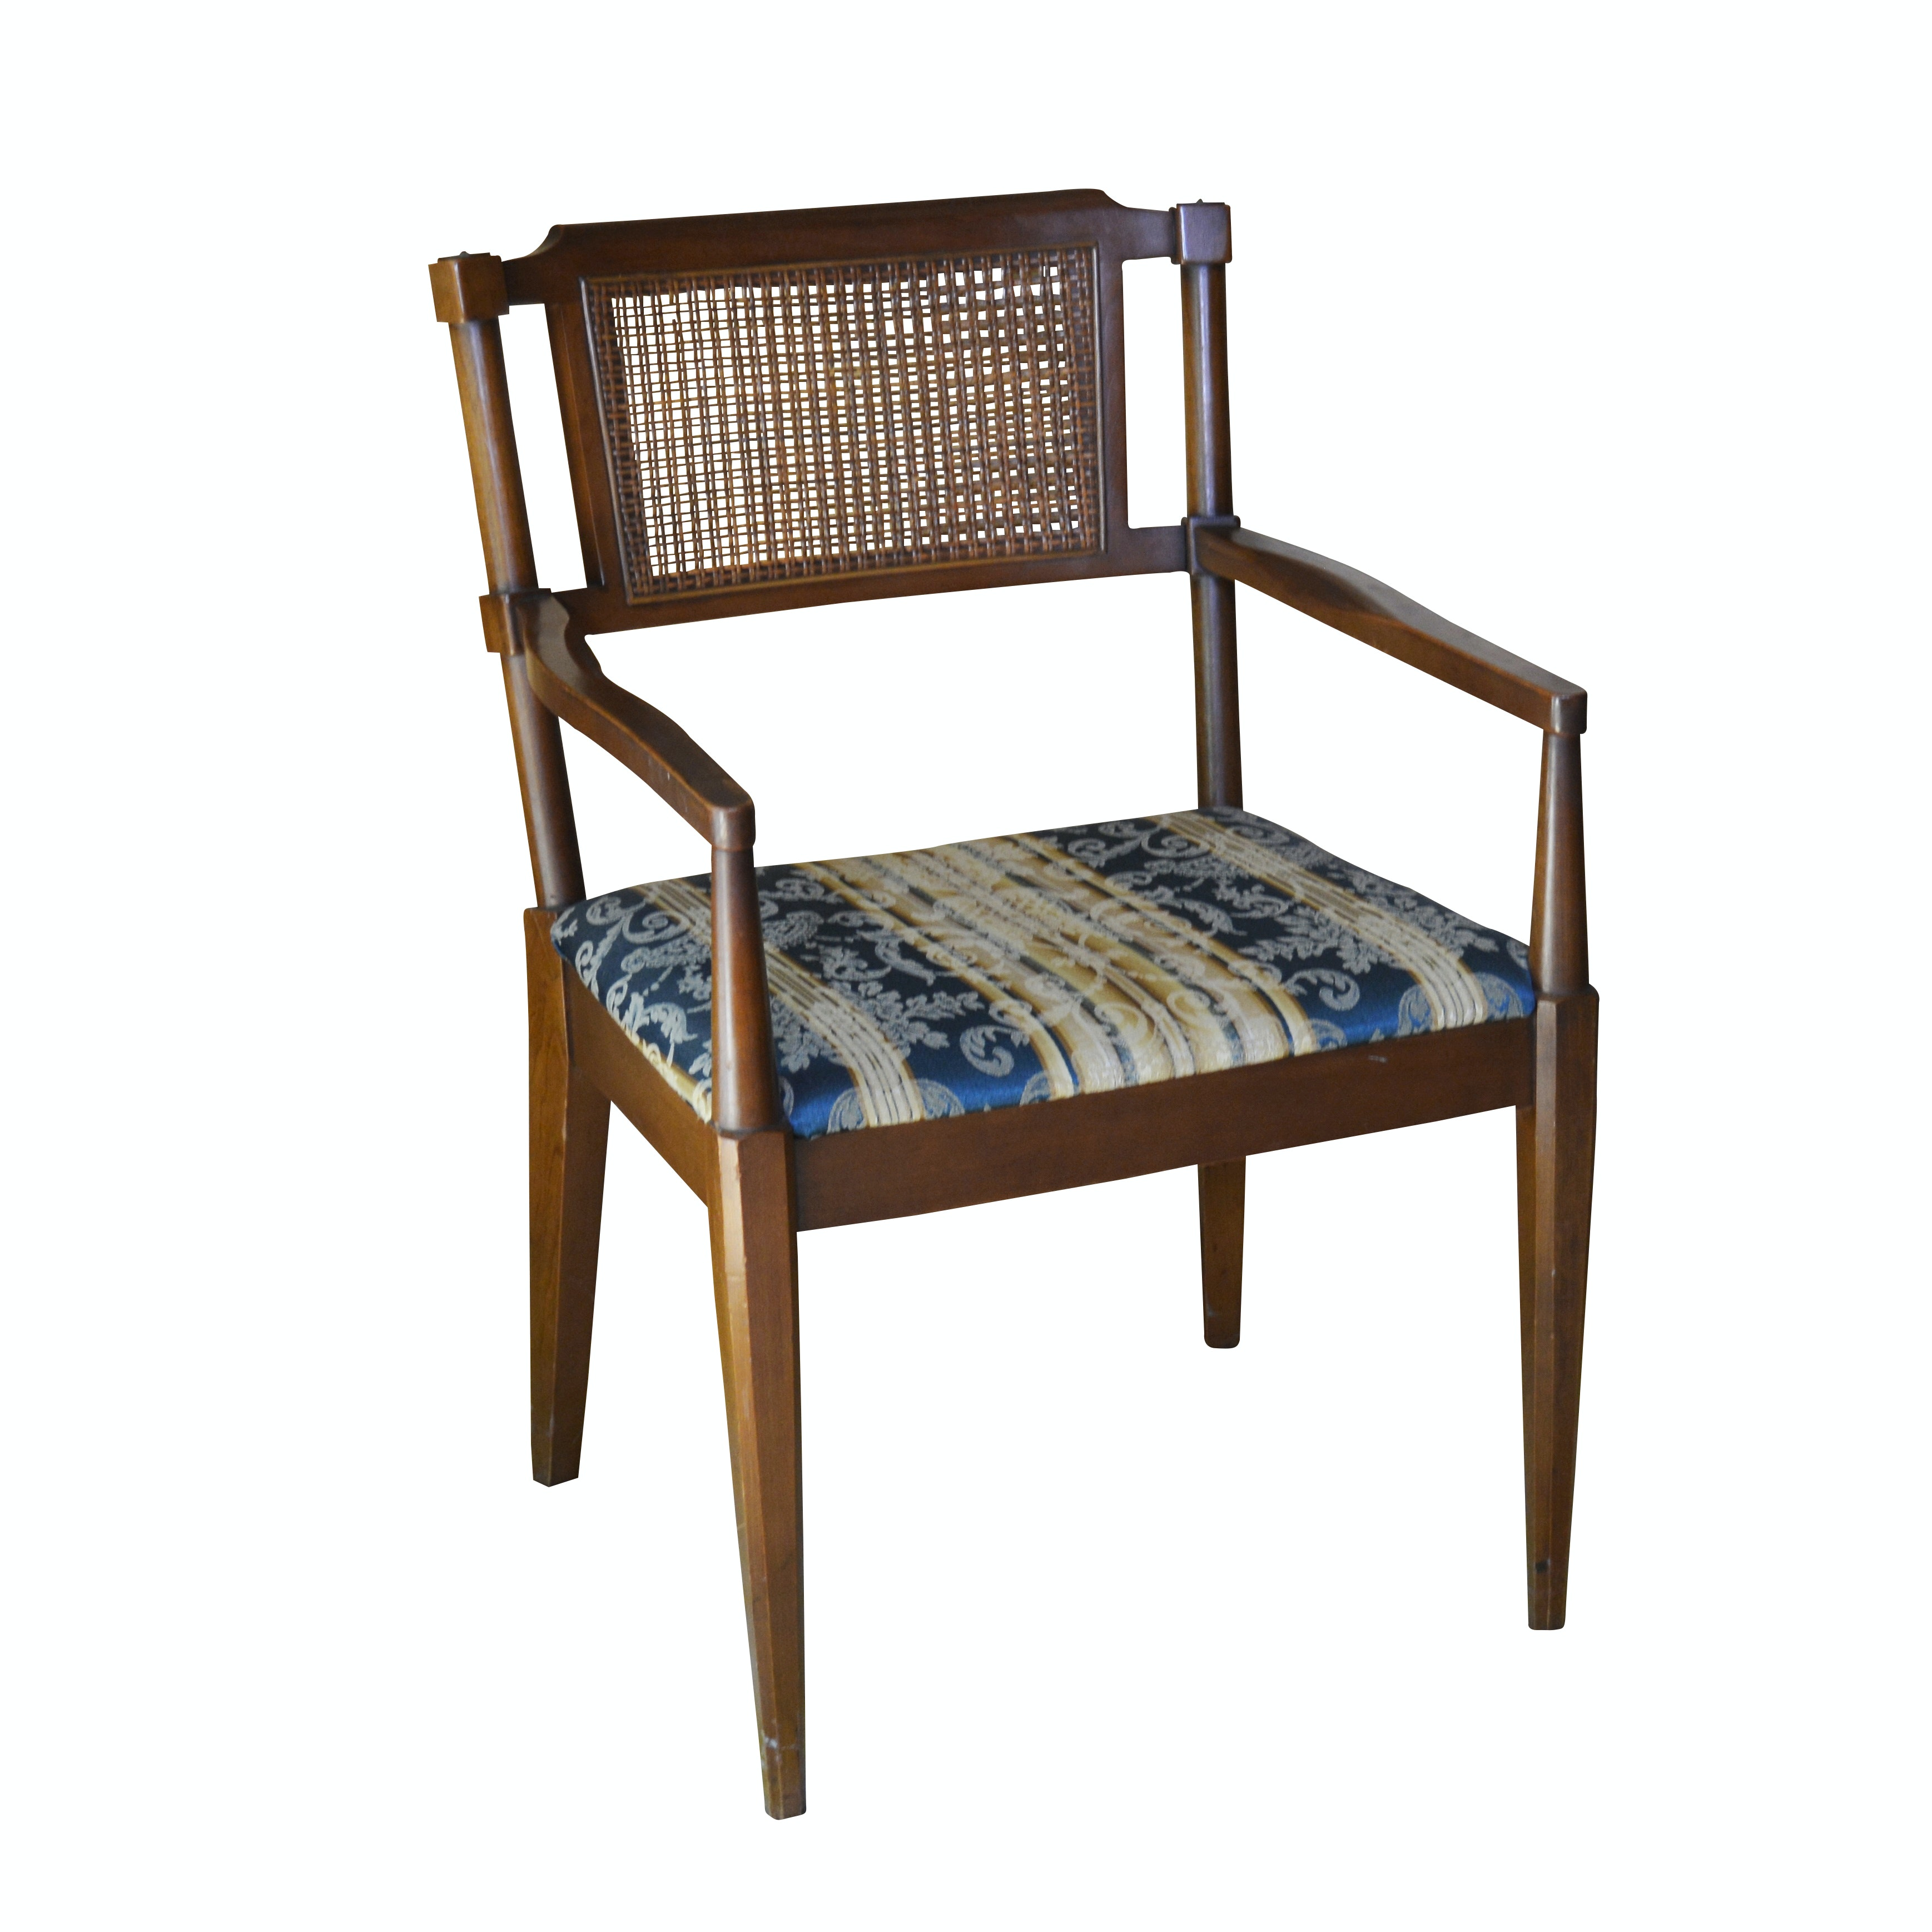 Rattan Back Upholstered Seat, Caned Back Wooden Armchair, Mid-20th Century